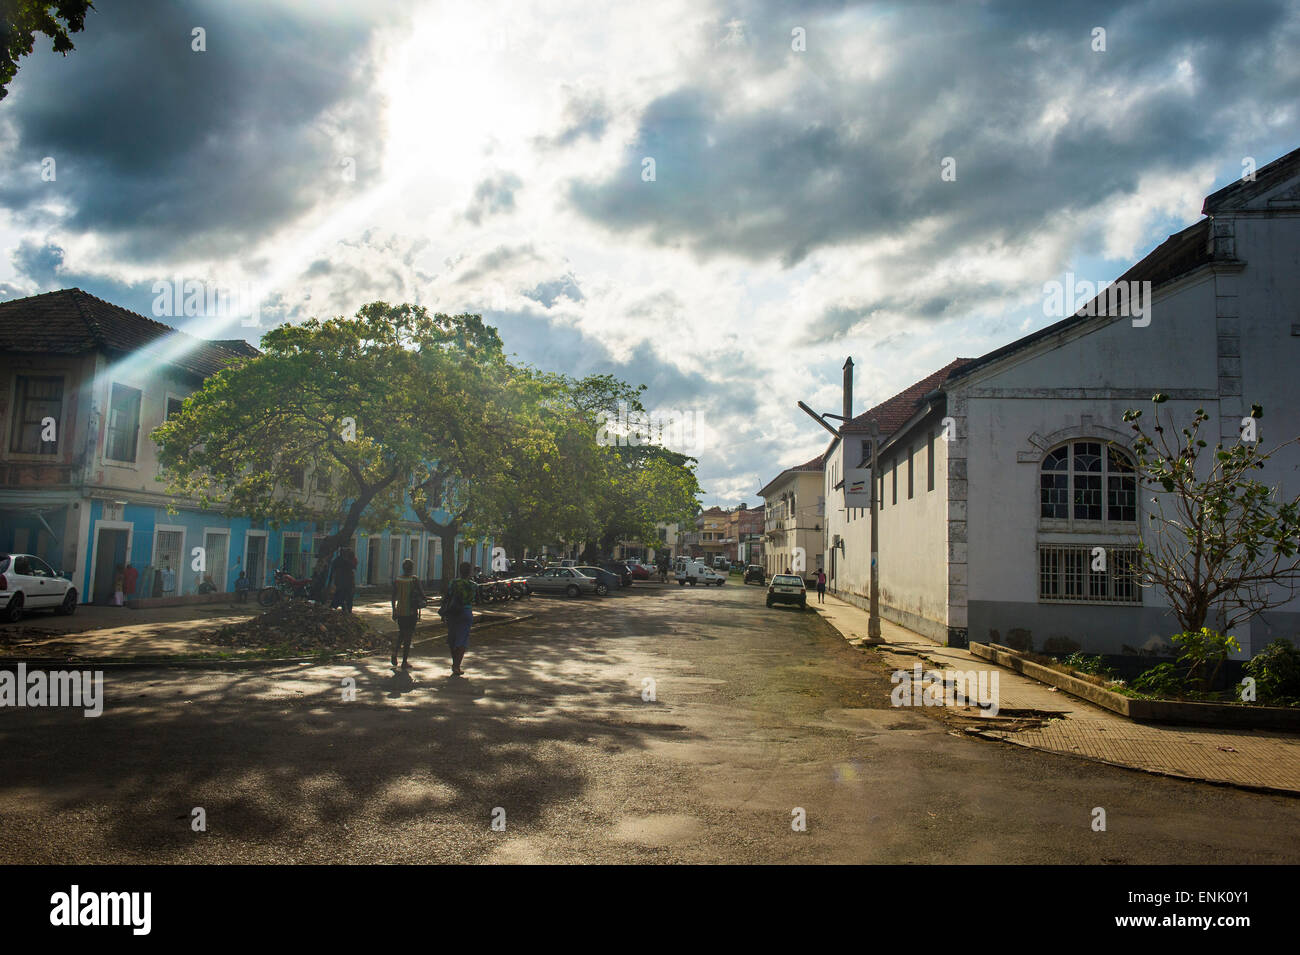 Colonial houses in the city of Sao Tome, Sao Tome and Principe, Atlantic Ocean, Africa - Stock Image